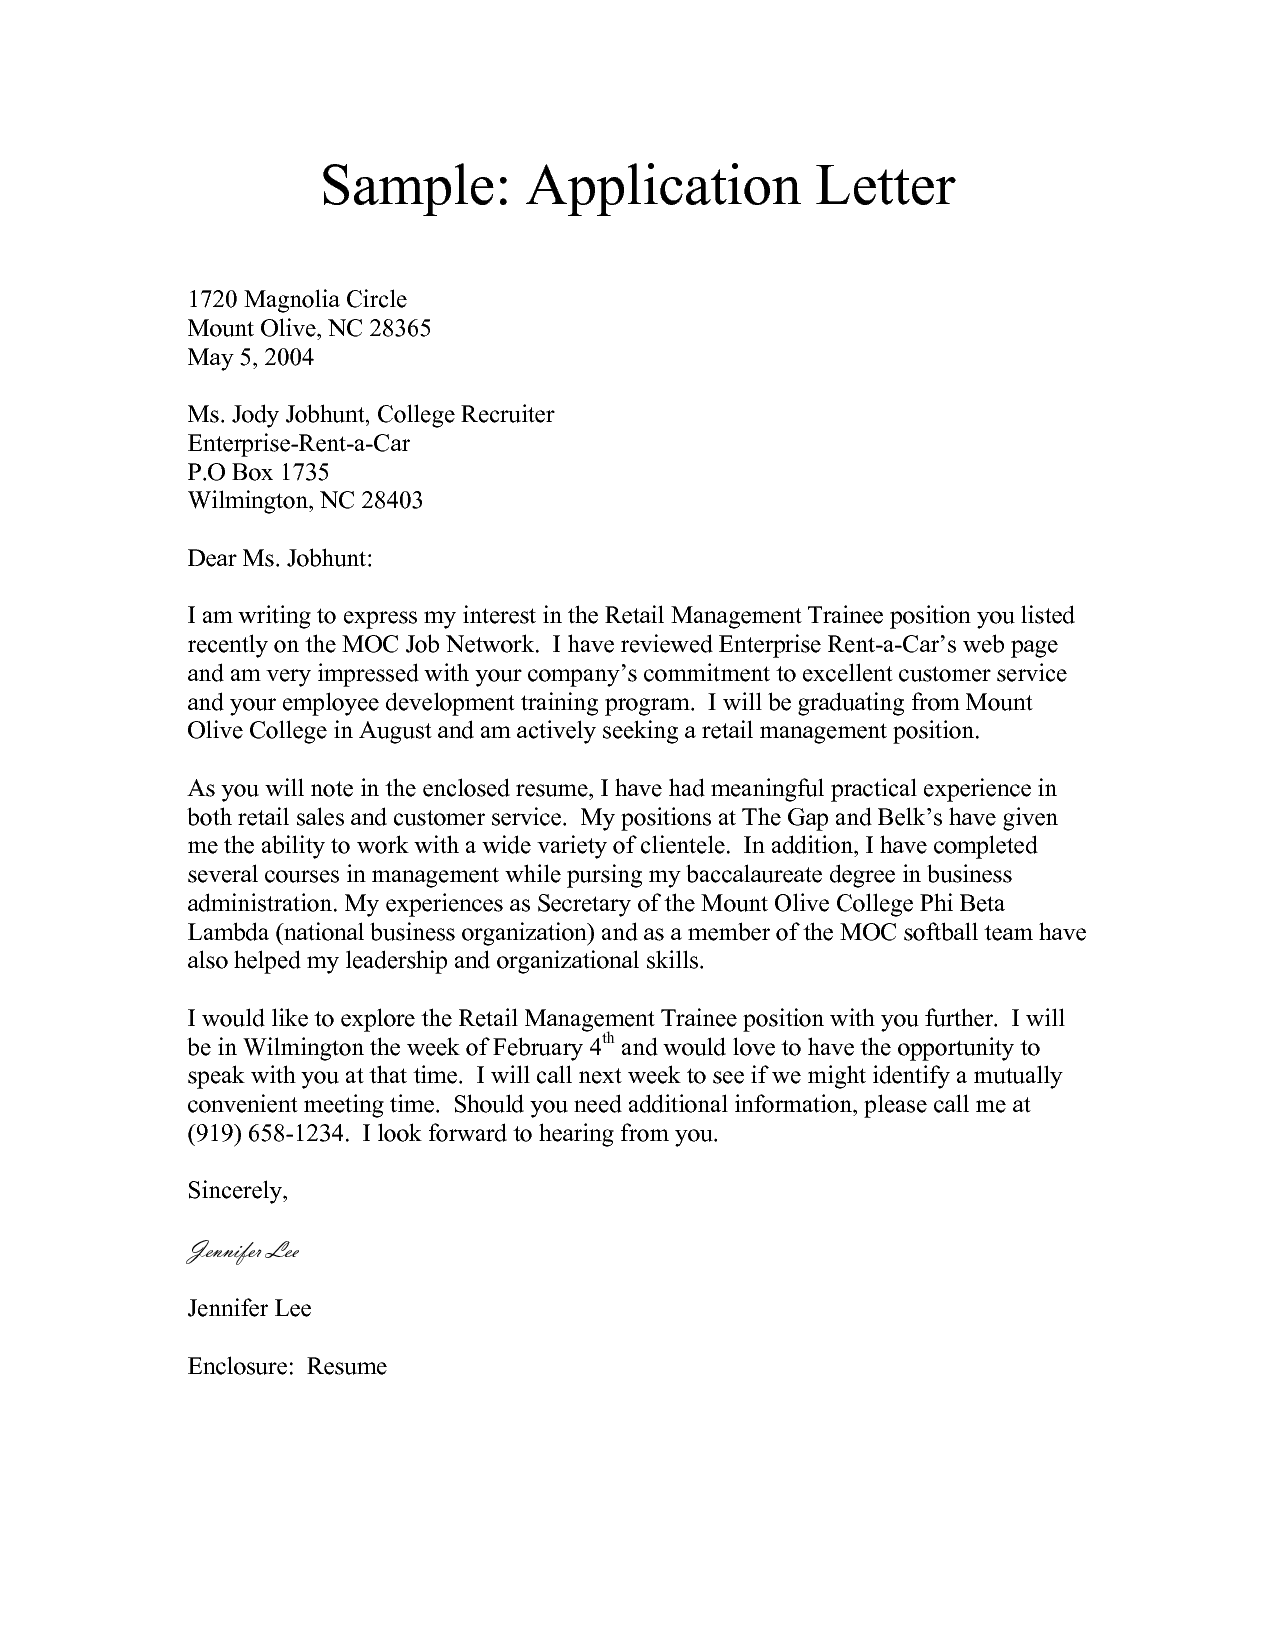 Download Free Application Letters Using Formal Well Written Letter